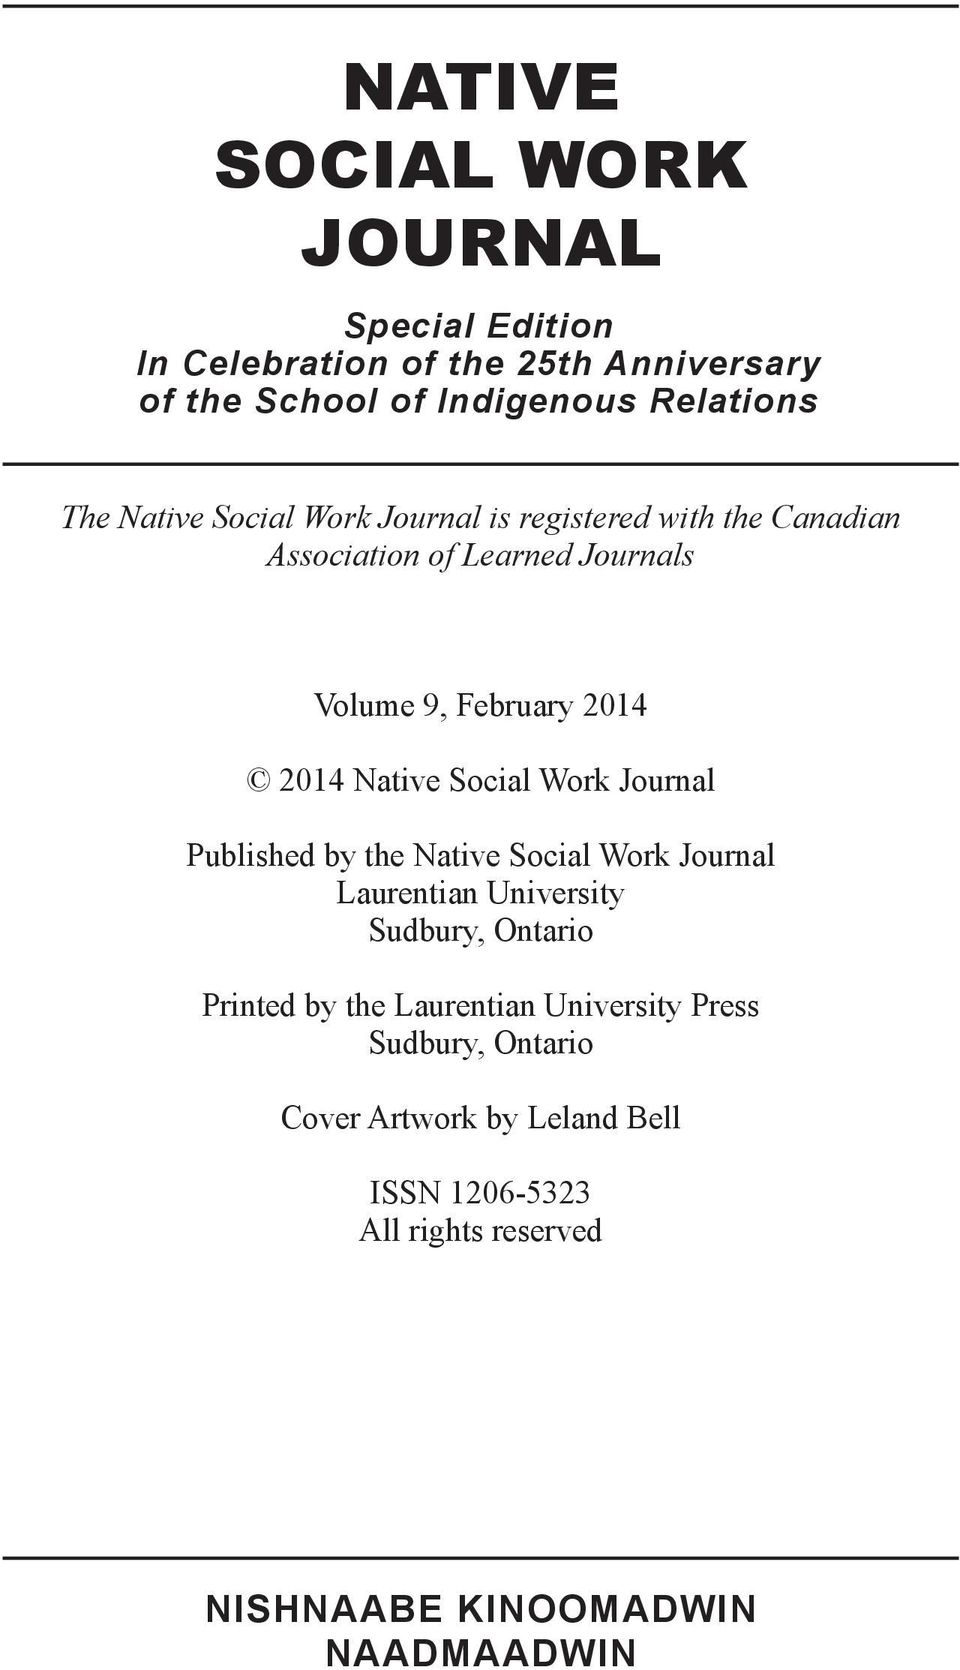 Social Work Journal Published by the Native Social Work Journal Laurentian University Sudbury, Ontario Printed by the